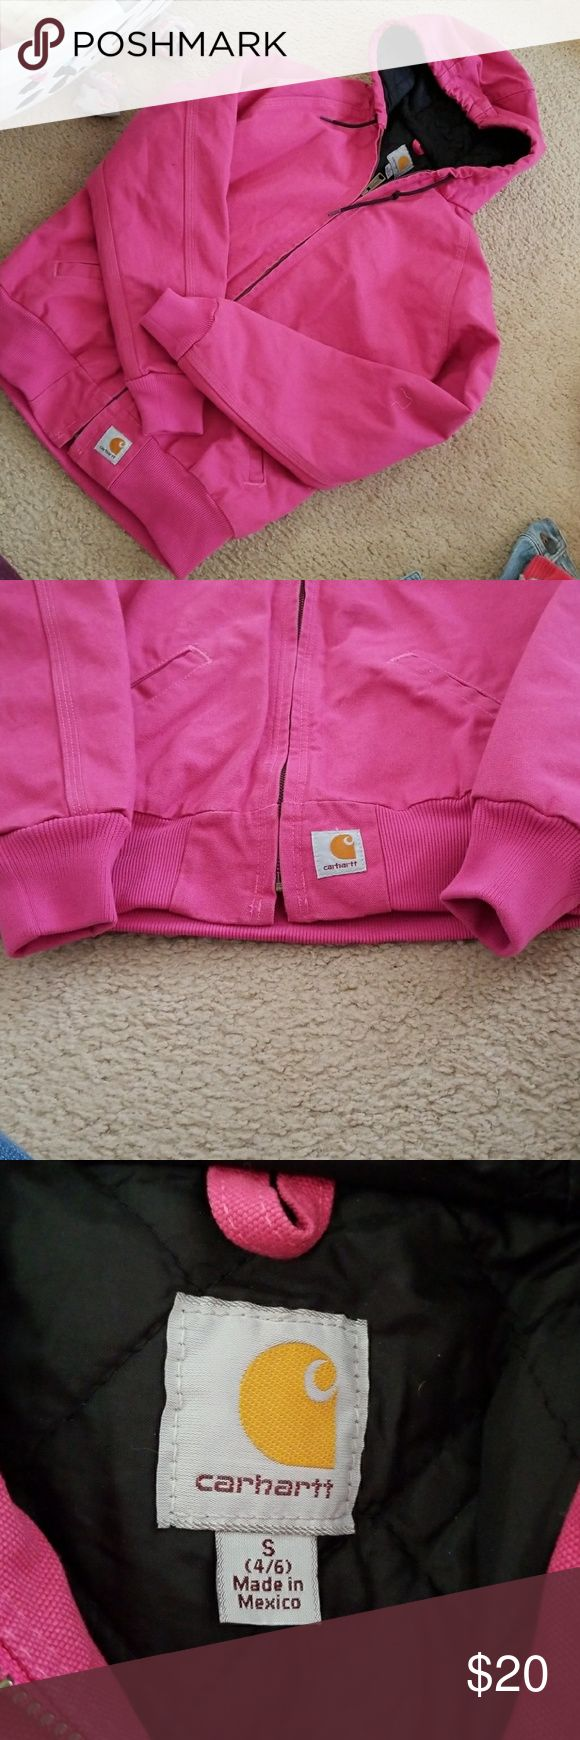 Carhartt Winter Jacket Pink/Fusia Pink sm winter jacket. Fits big almost like a medium. NEVER worn. NWOT. Open to offers. Carhartt Jackets & Coats